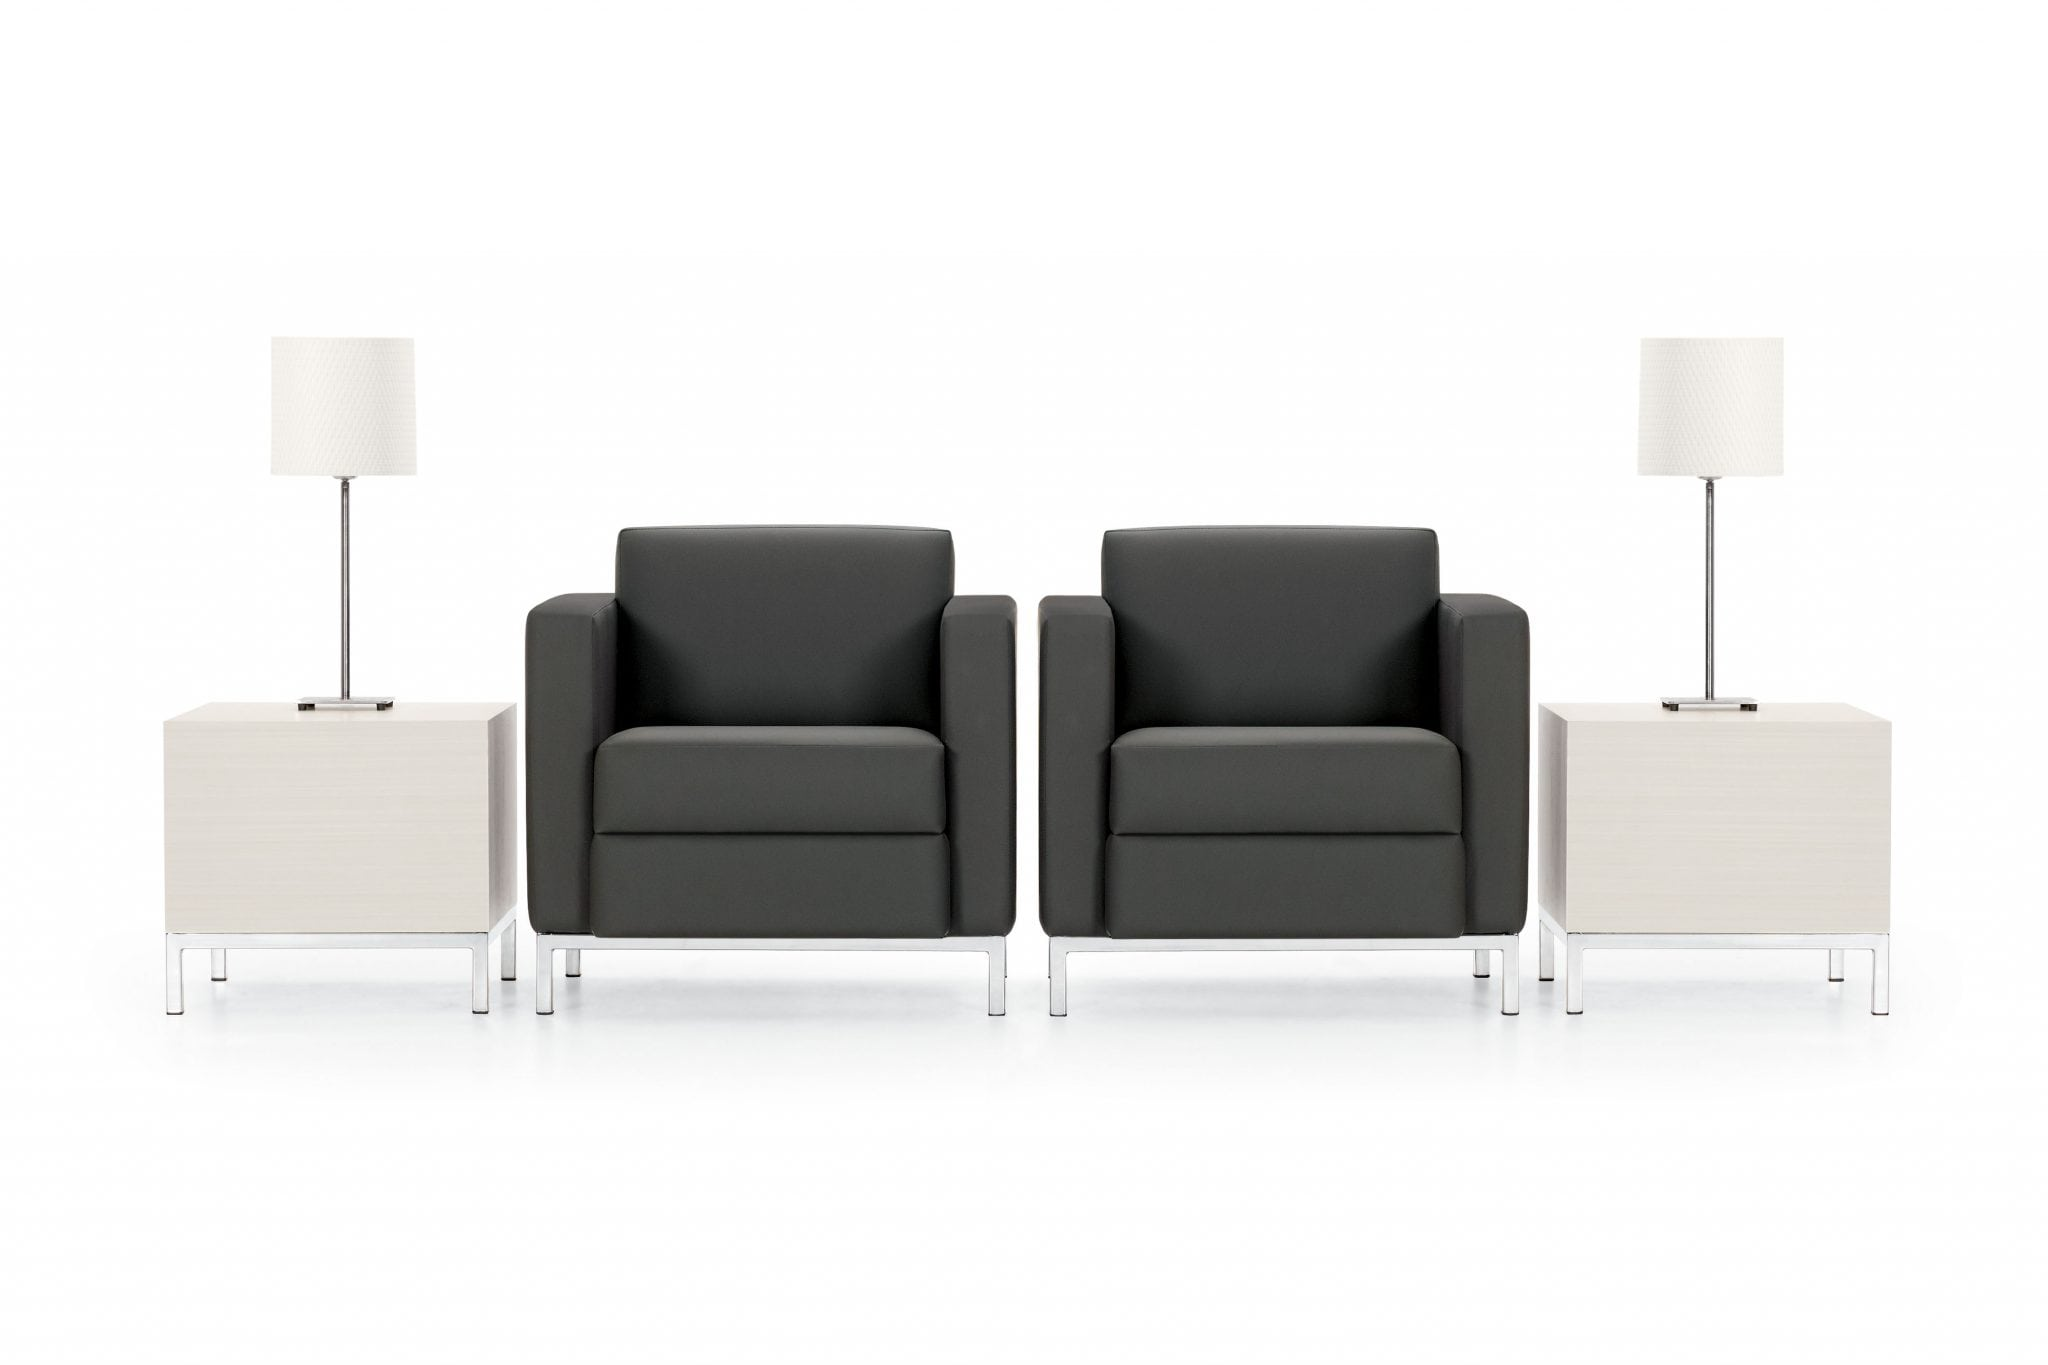 Citi Square Seating - An attractive addition to any lounge or reception area